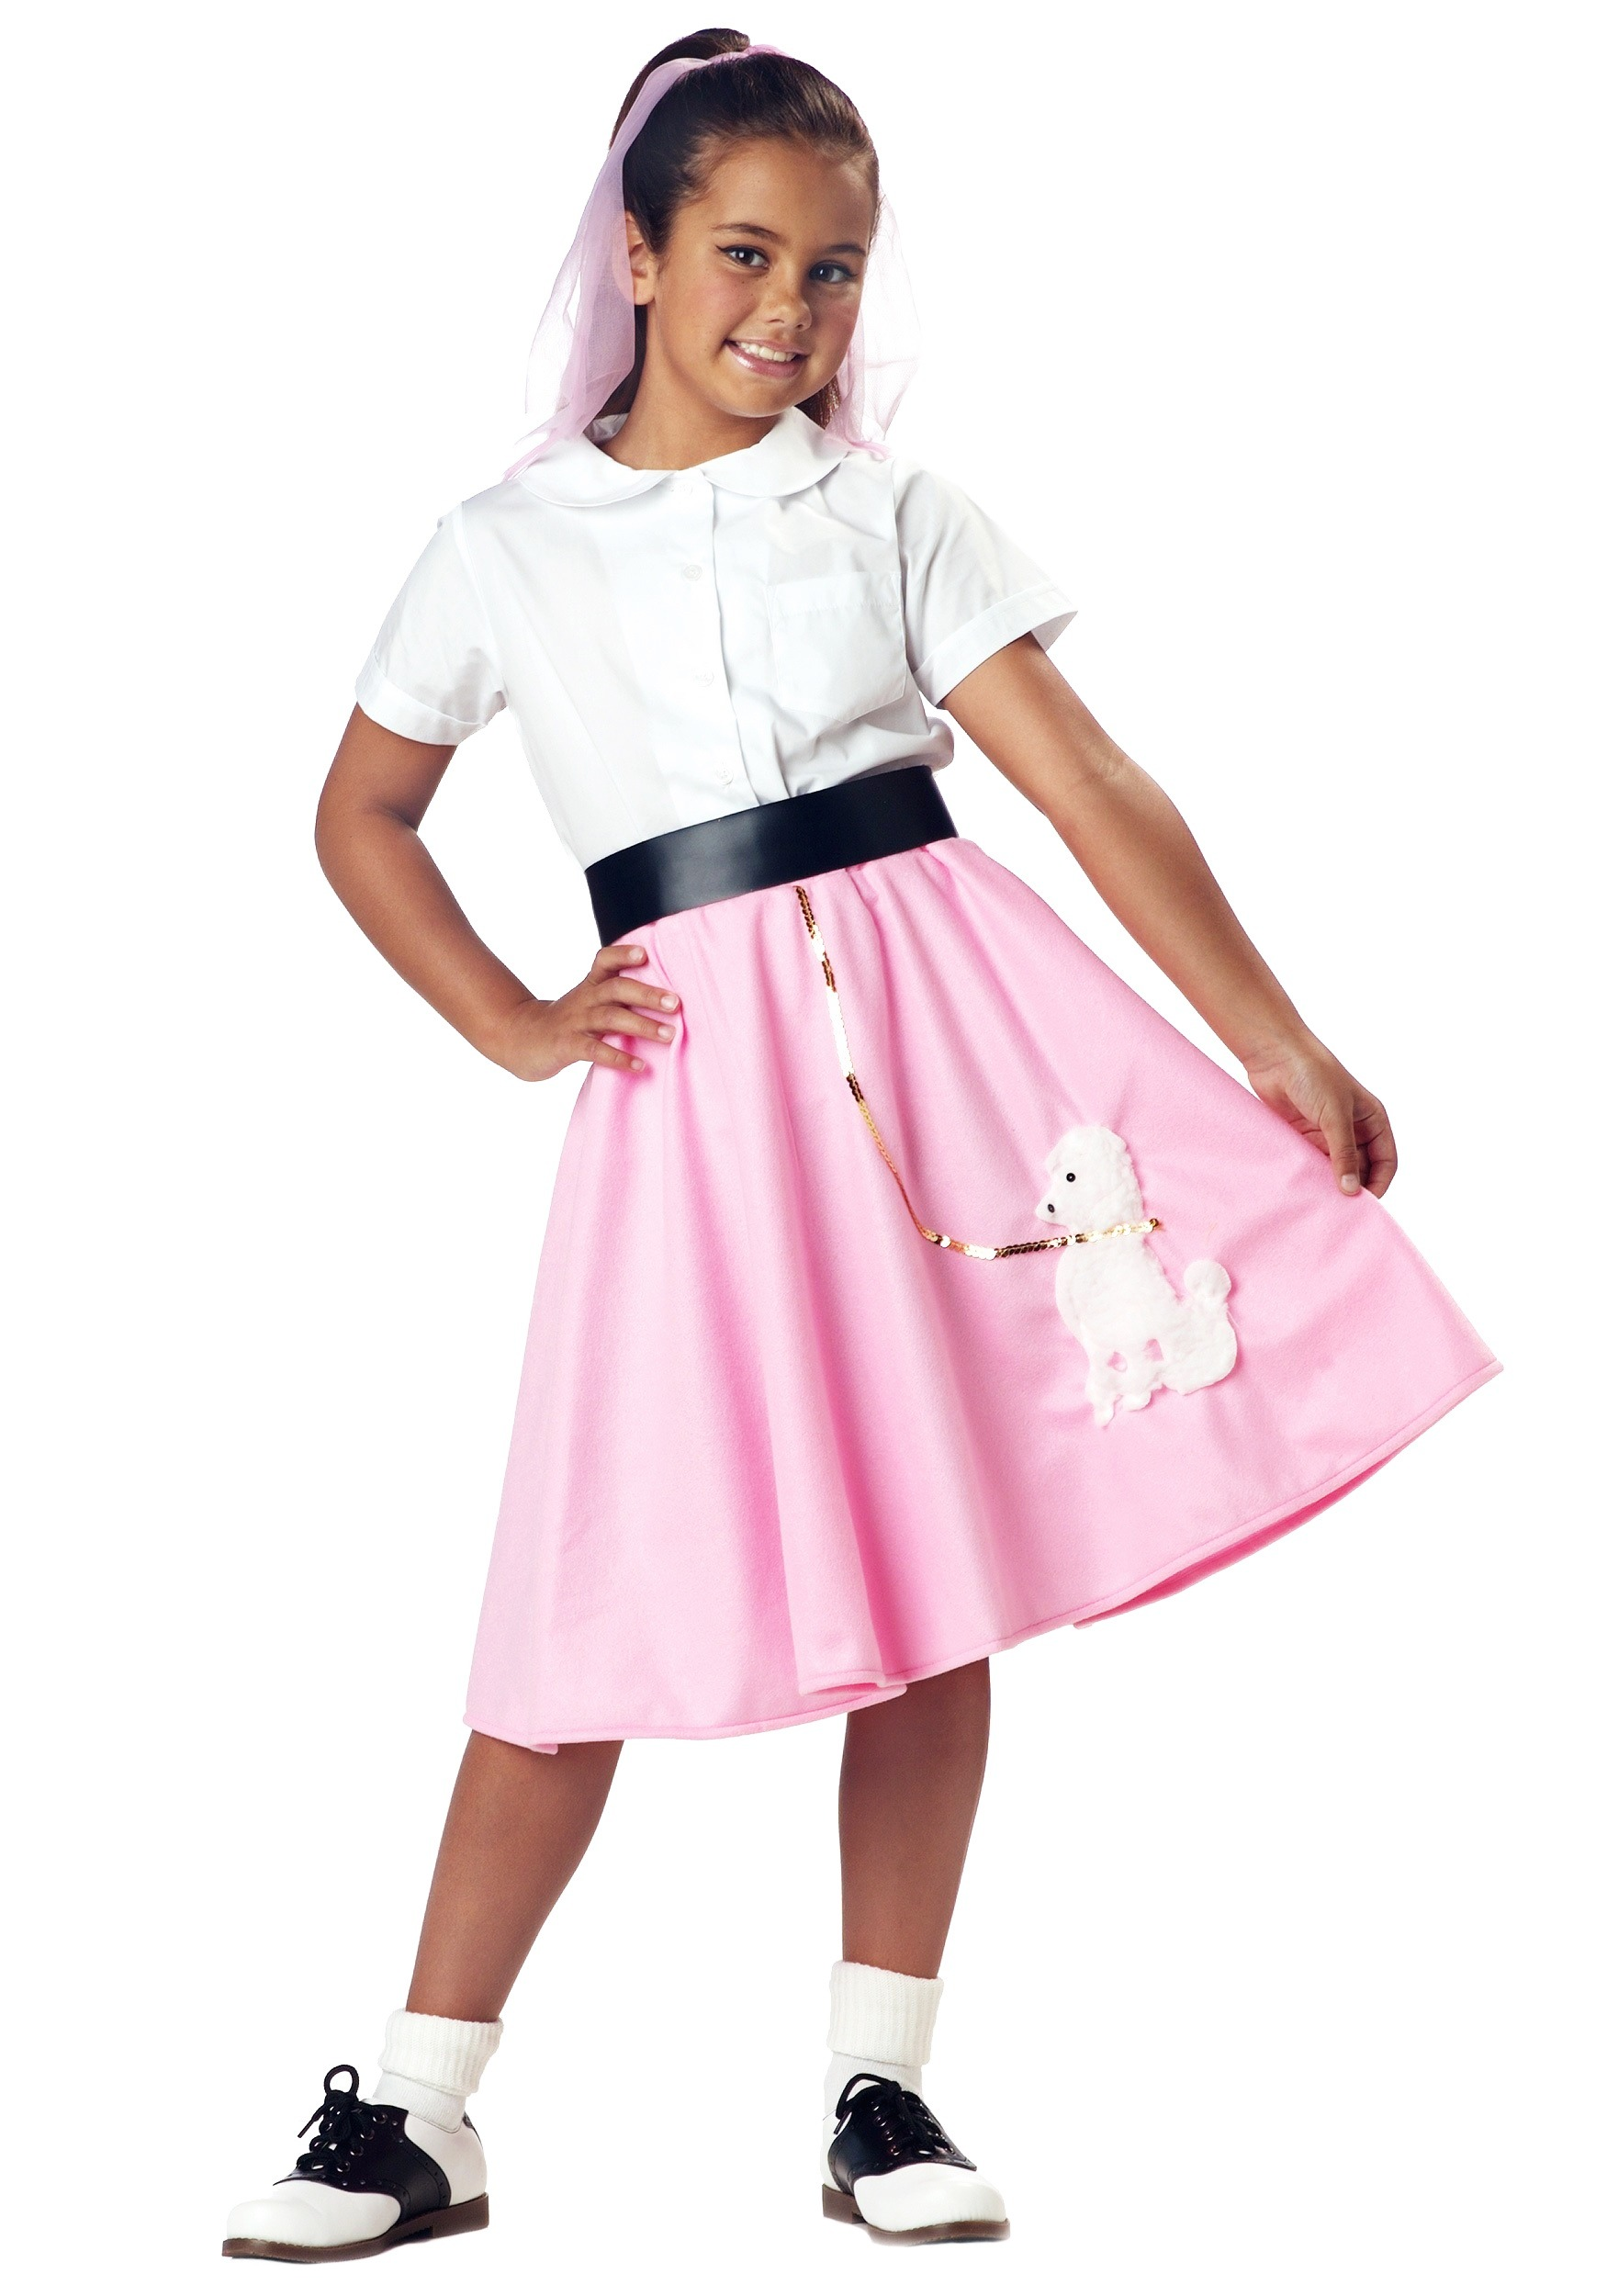 Girls Pink Poodle Skirt  sc 1 st  Halloween Costume & Girls Pink Poodle Skirt - Kids 1950s Poodle Skirt Halloween Costumes